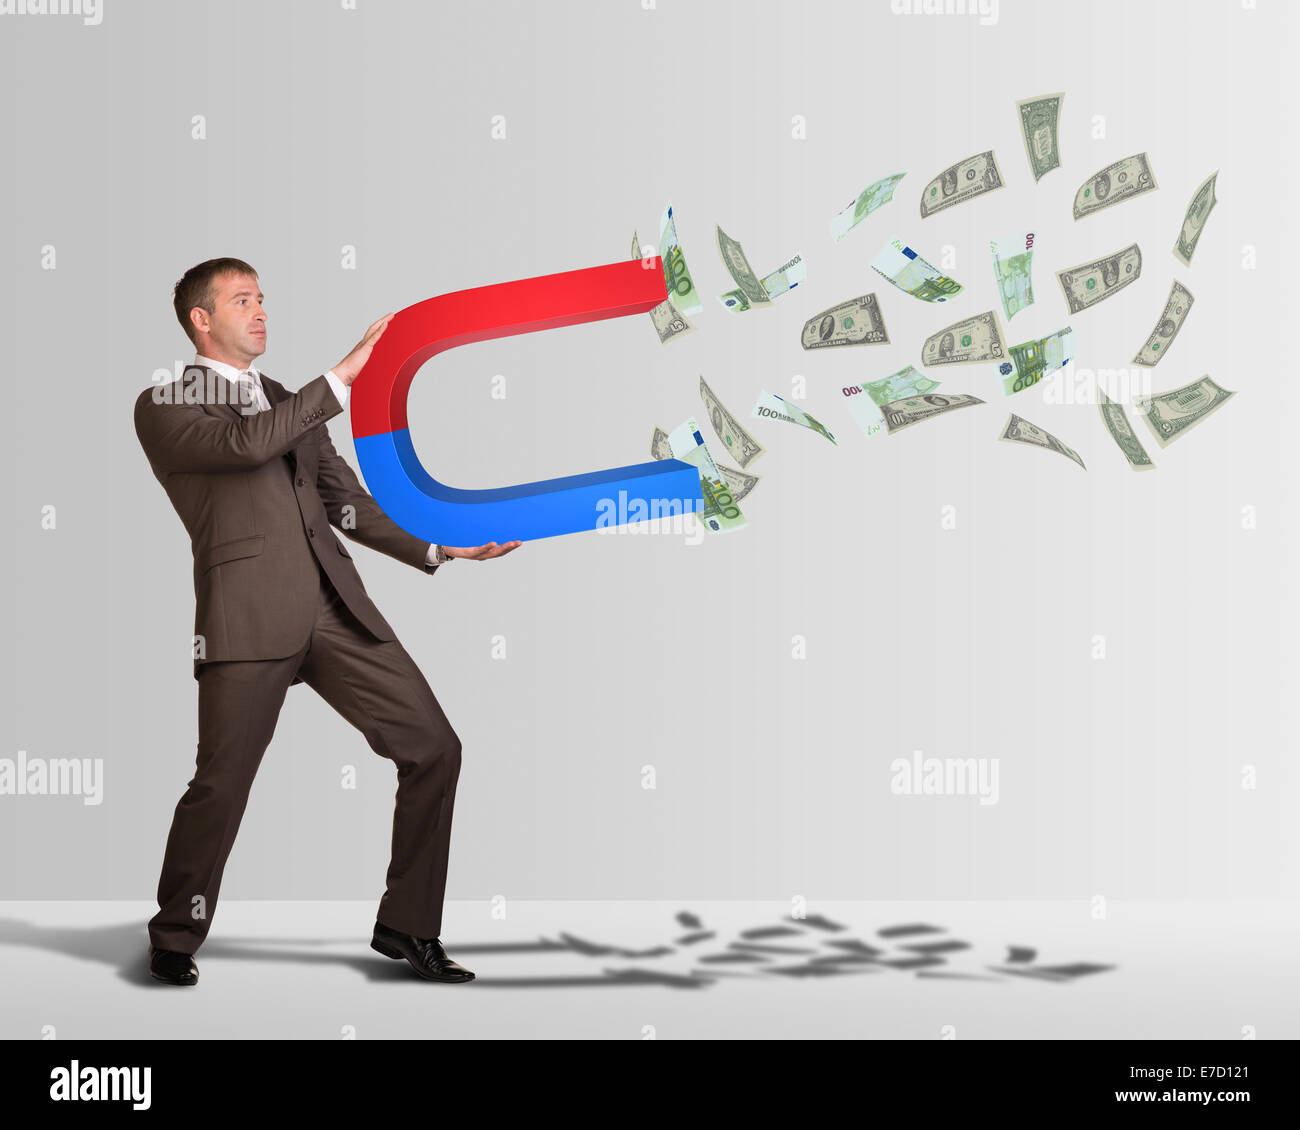 businessman in suit holding big magnet and attracts money stock